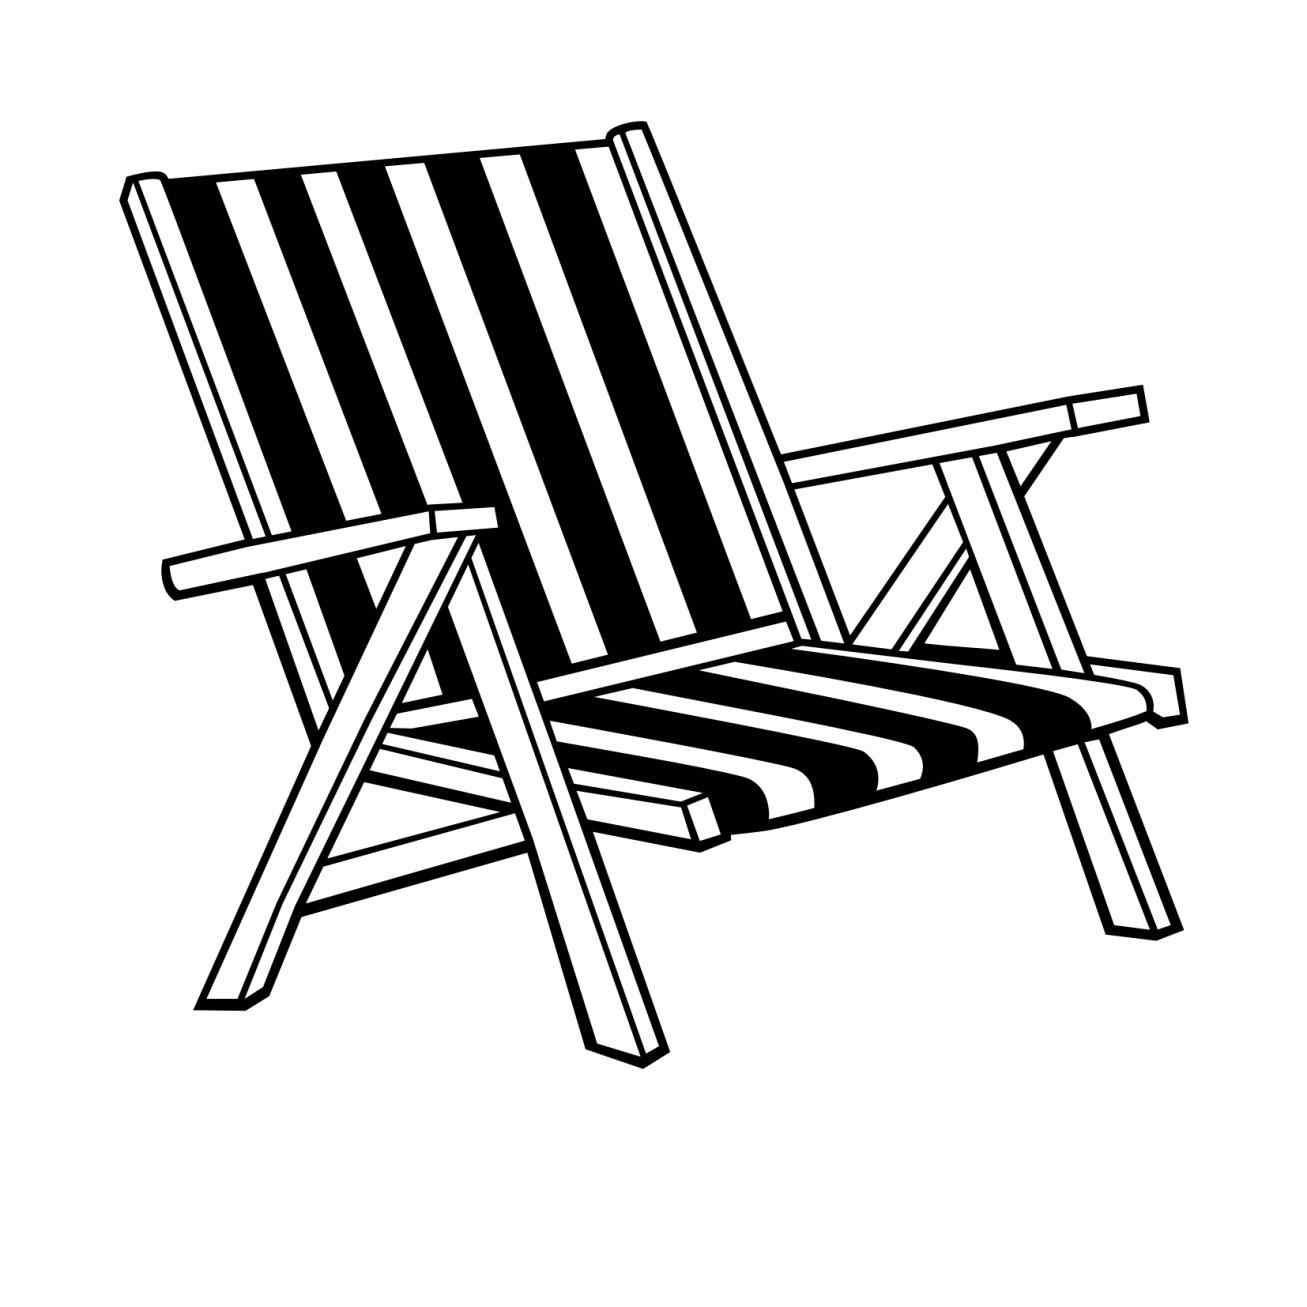 drawing of a chair plastic drawing at getdrawings free download drawing of chair a